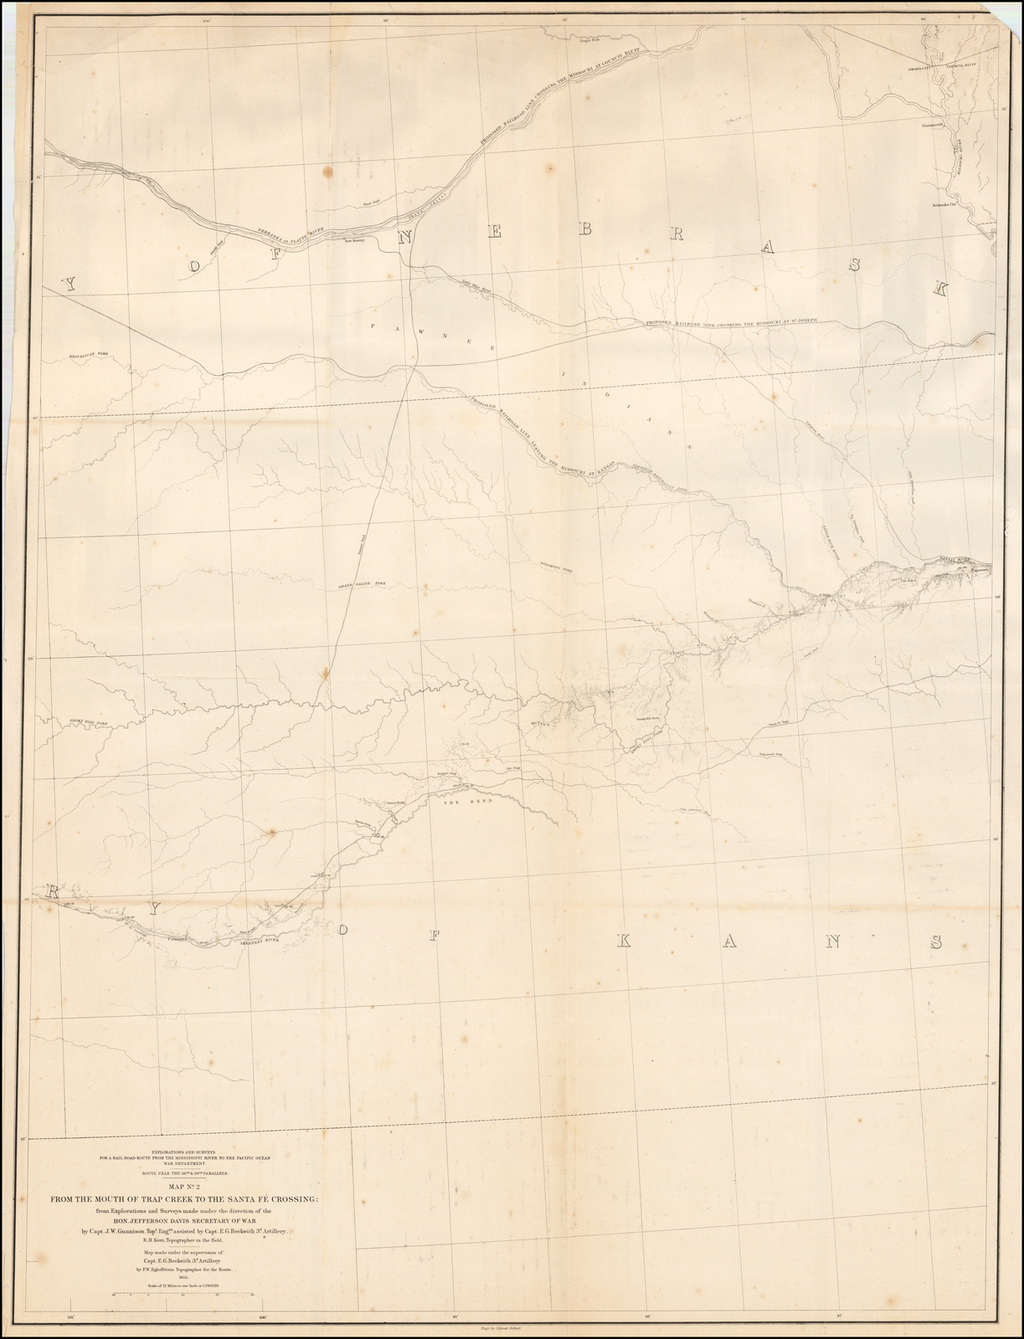 Map No. 2 From The Mouth of Trap River To The Santa Fe Crossing; from Explorations and surveys made under the direction of the Hon. Jefferson Davis Secretary of War by Capt. E.G. Beckwith 3d. R.H. Kern Topographer in the Field . . . . 1855 By